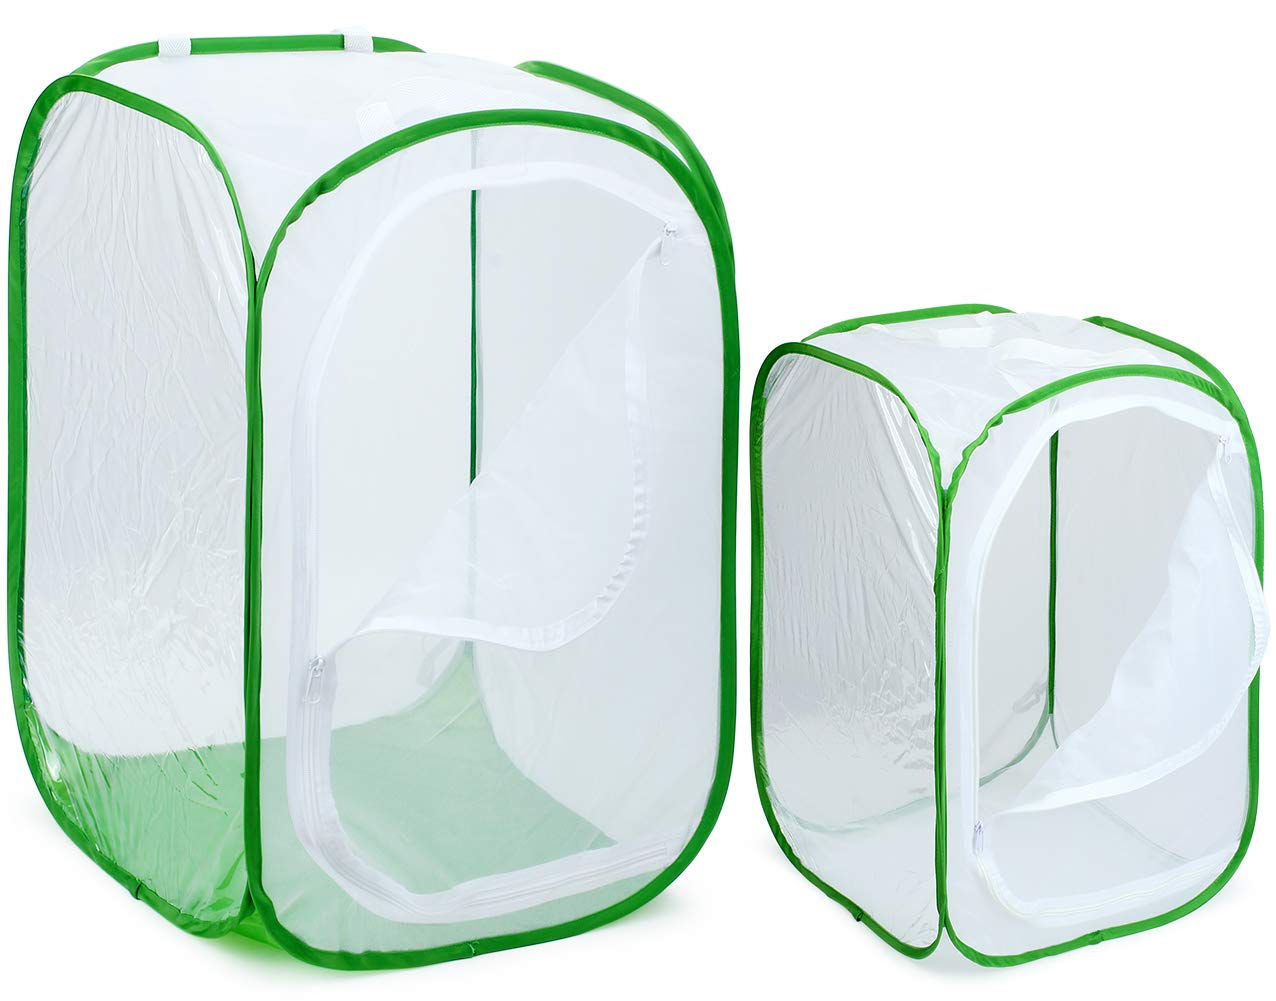 RESTCLOUD 2-Pack 24'' & 36'' Large Monarch Butterfly Habitat, Giant Collapsible Insect Mesh Cage Terrarium Pop-up